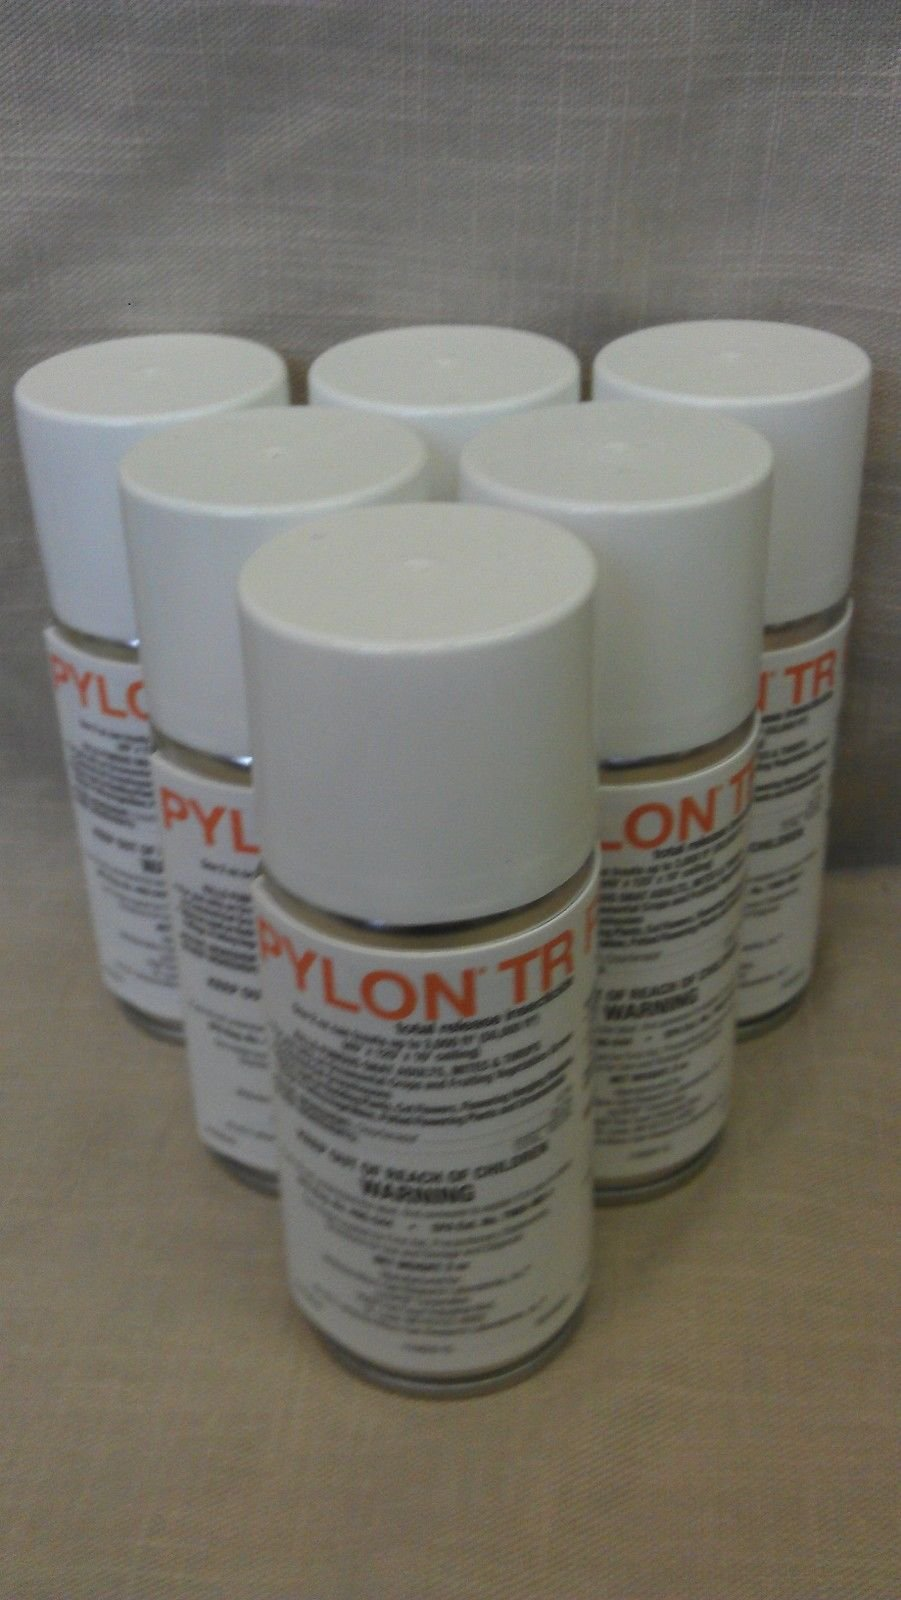 6- 2oz. Cans of Pylon Total Release Miticide/new From Basf/excellent for Mites